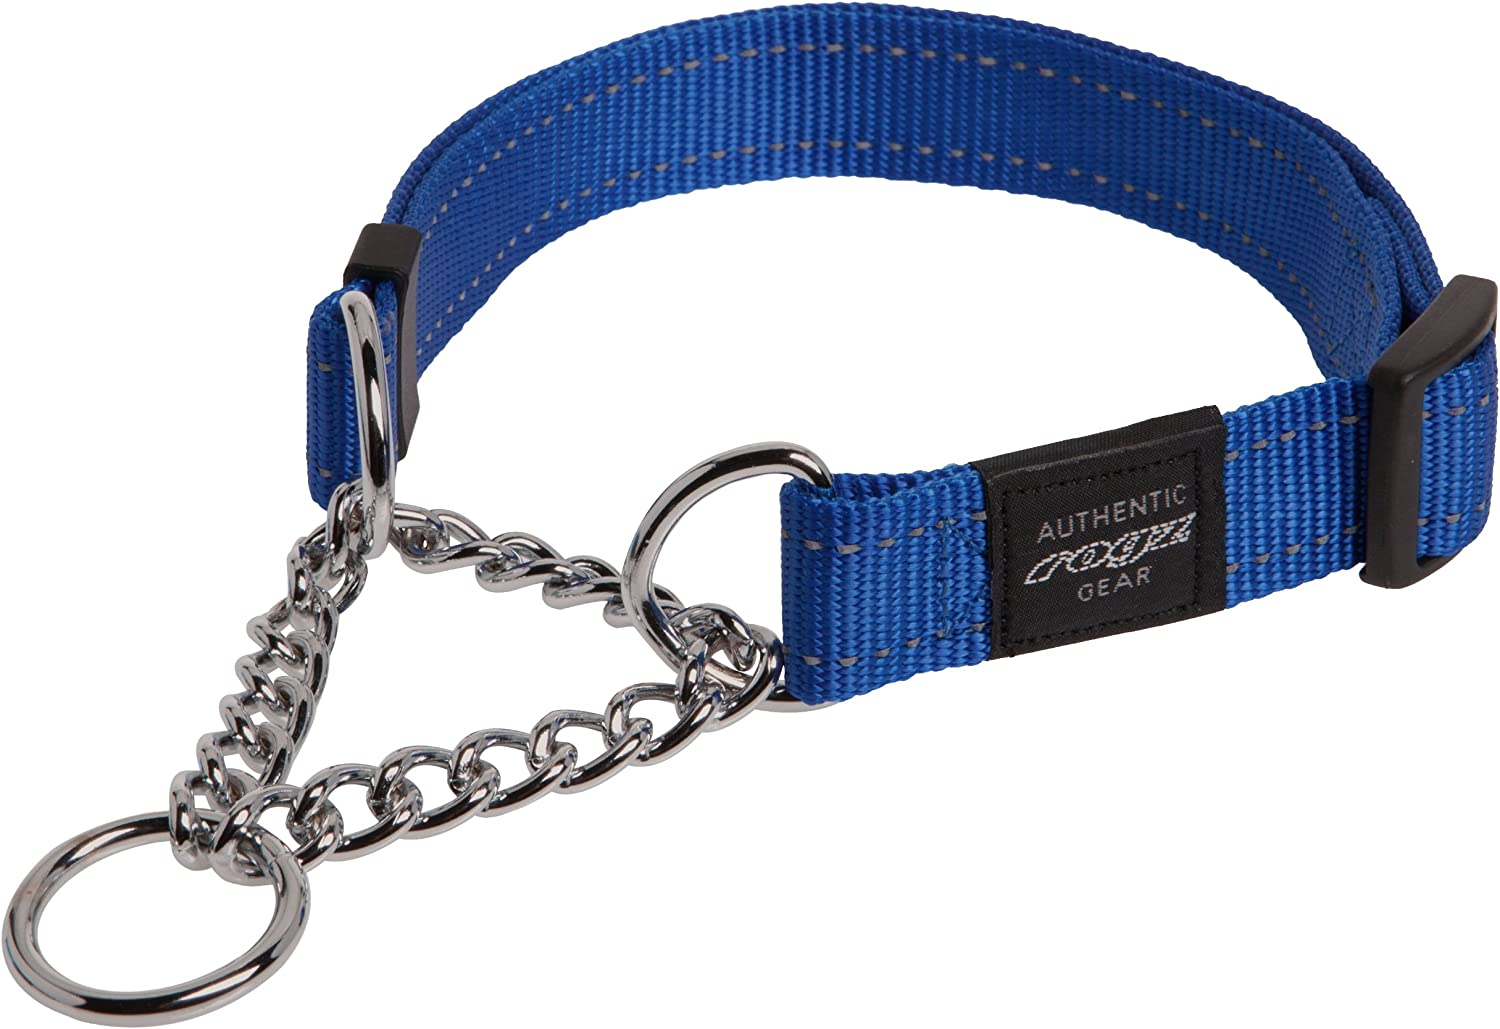 Top 10 Dog Collars | 2020 Updated Review 5